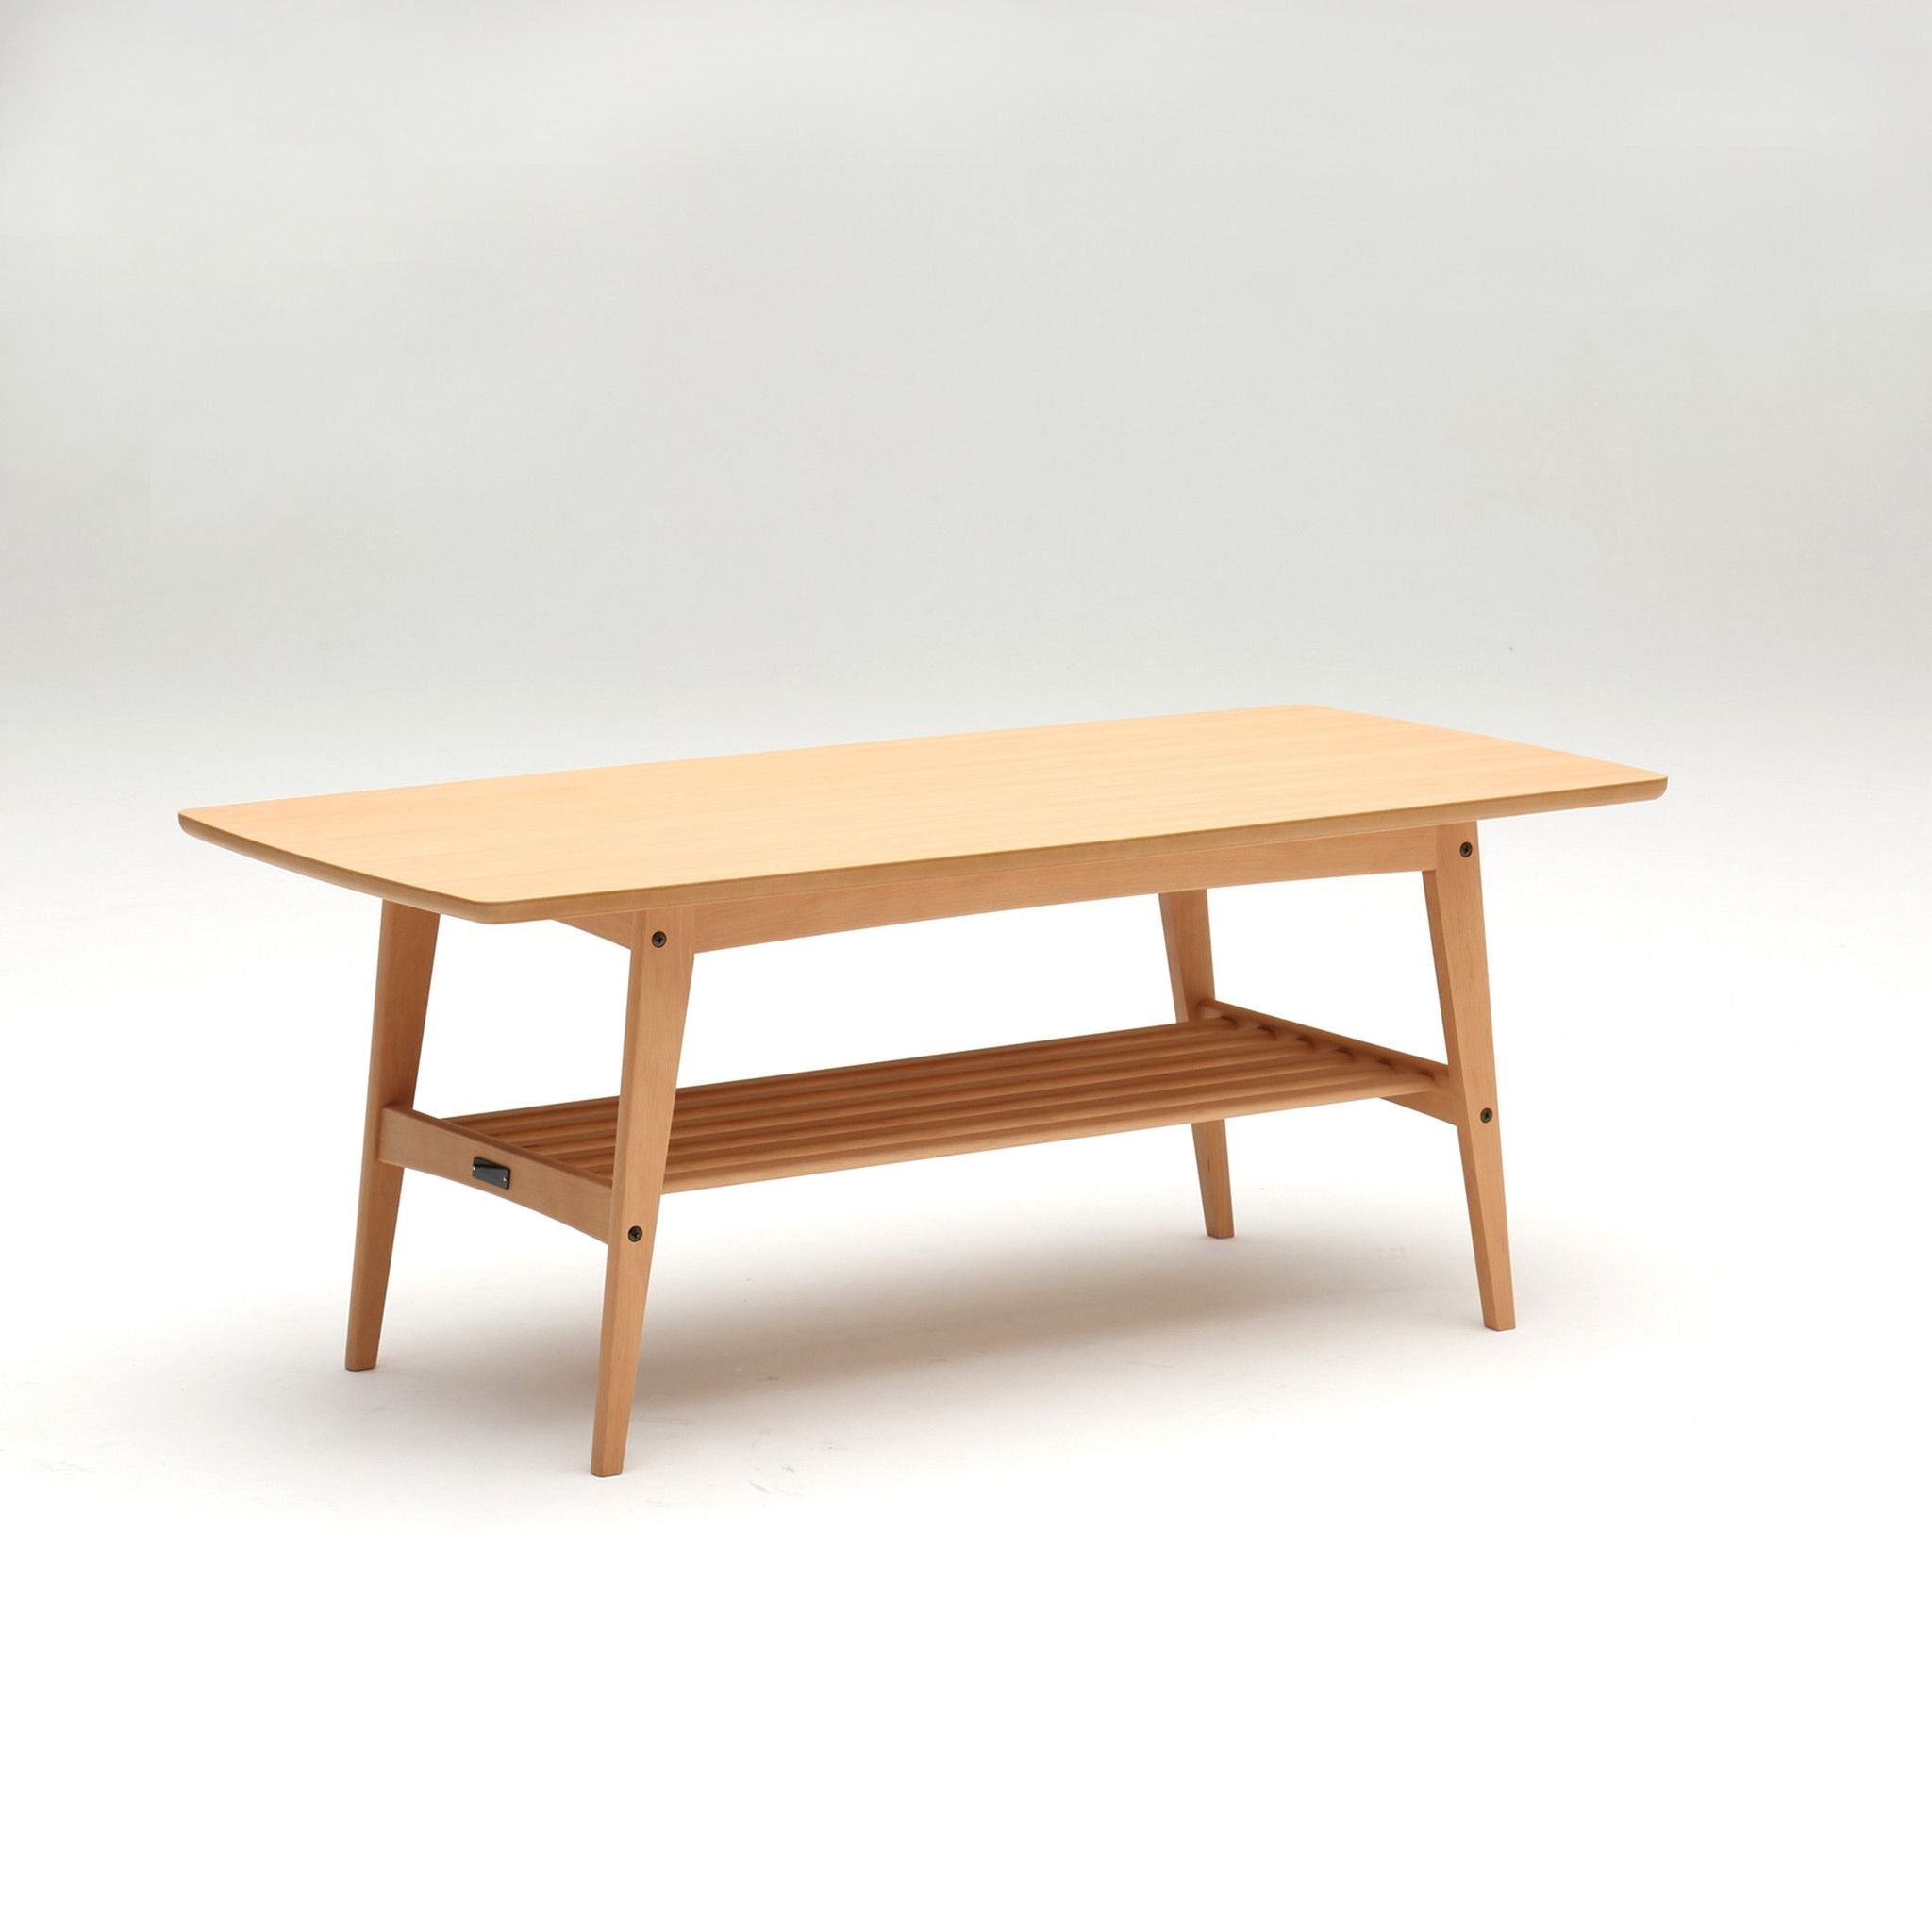 living table large beech - Coffee Table - Karimoku60